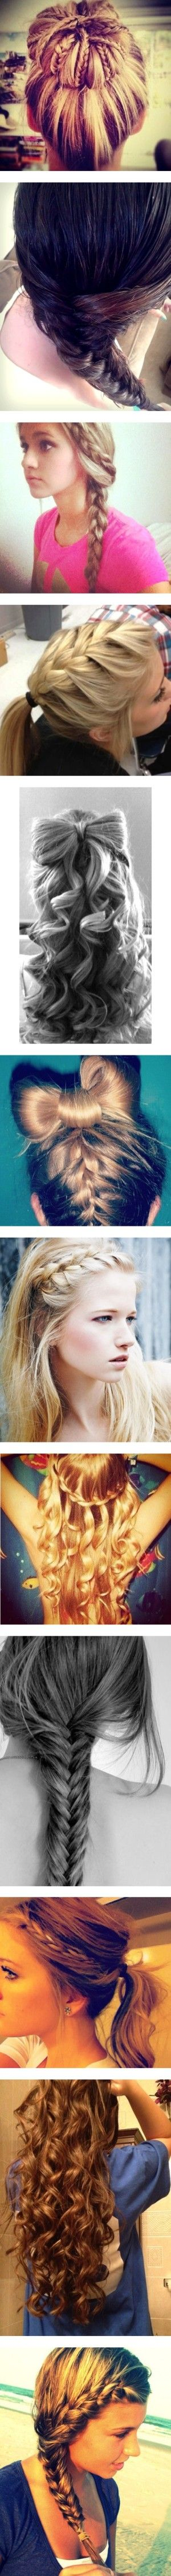 best images about long hair donut careee on pinterest updo